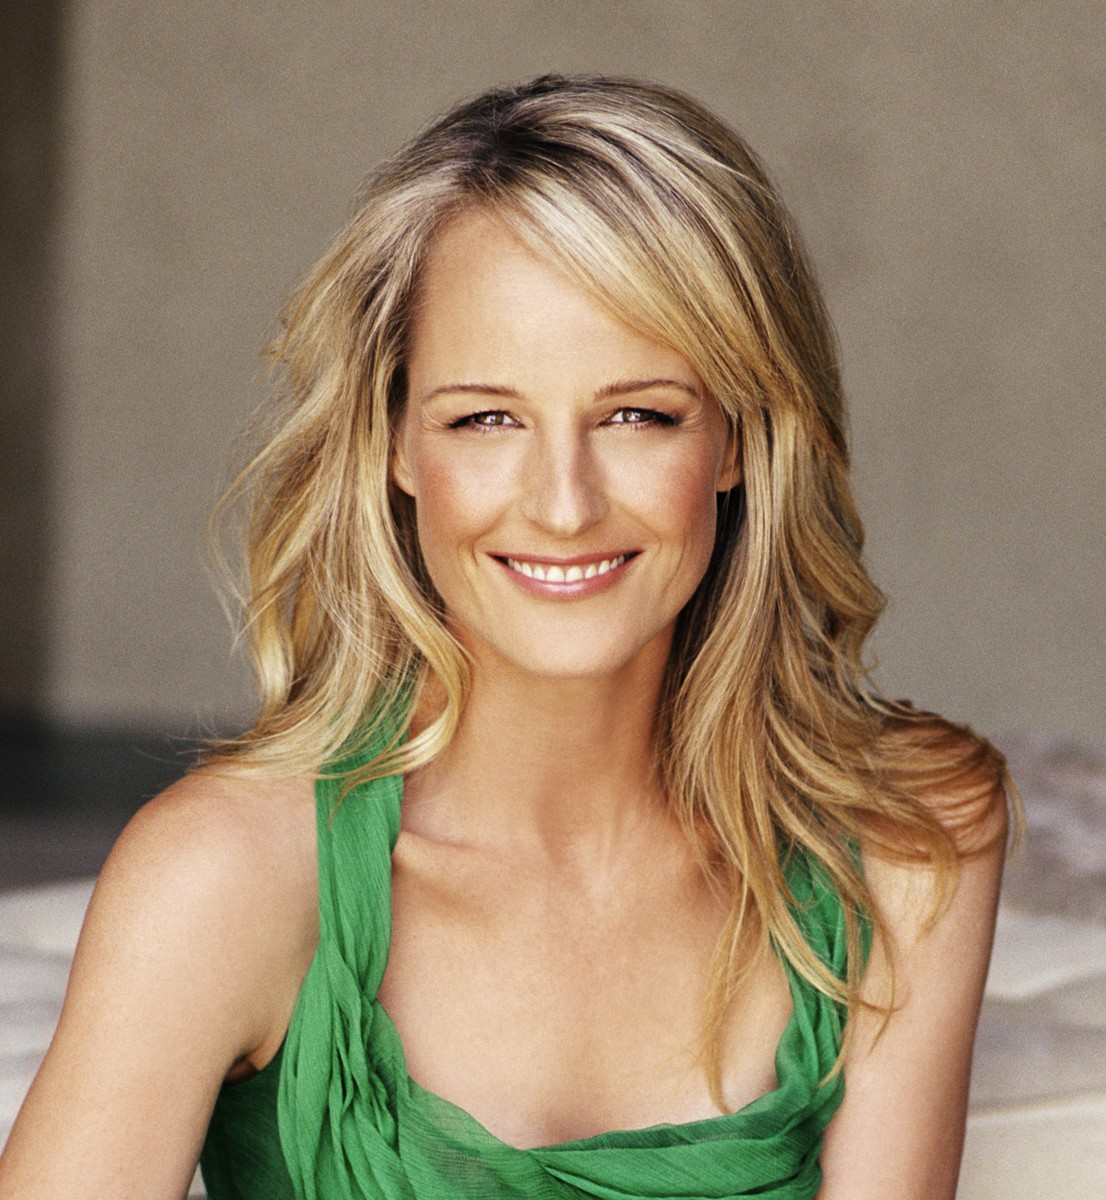 The 56-year old daughter of father (?) and mother(?) Helen Hunt in 2020 photo. Helen Hunt earned a  million dollar salary - leaving the net worth at  million in 2020